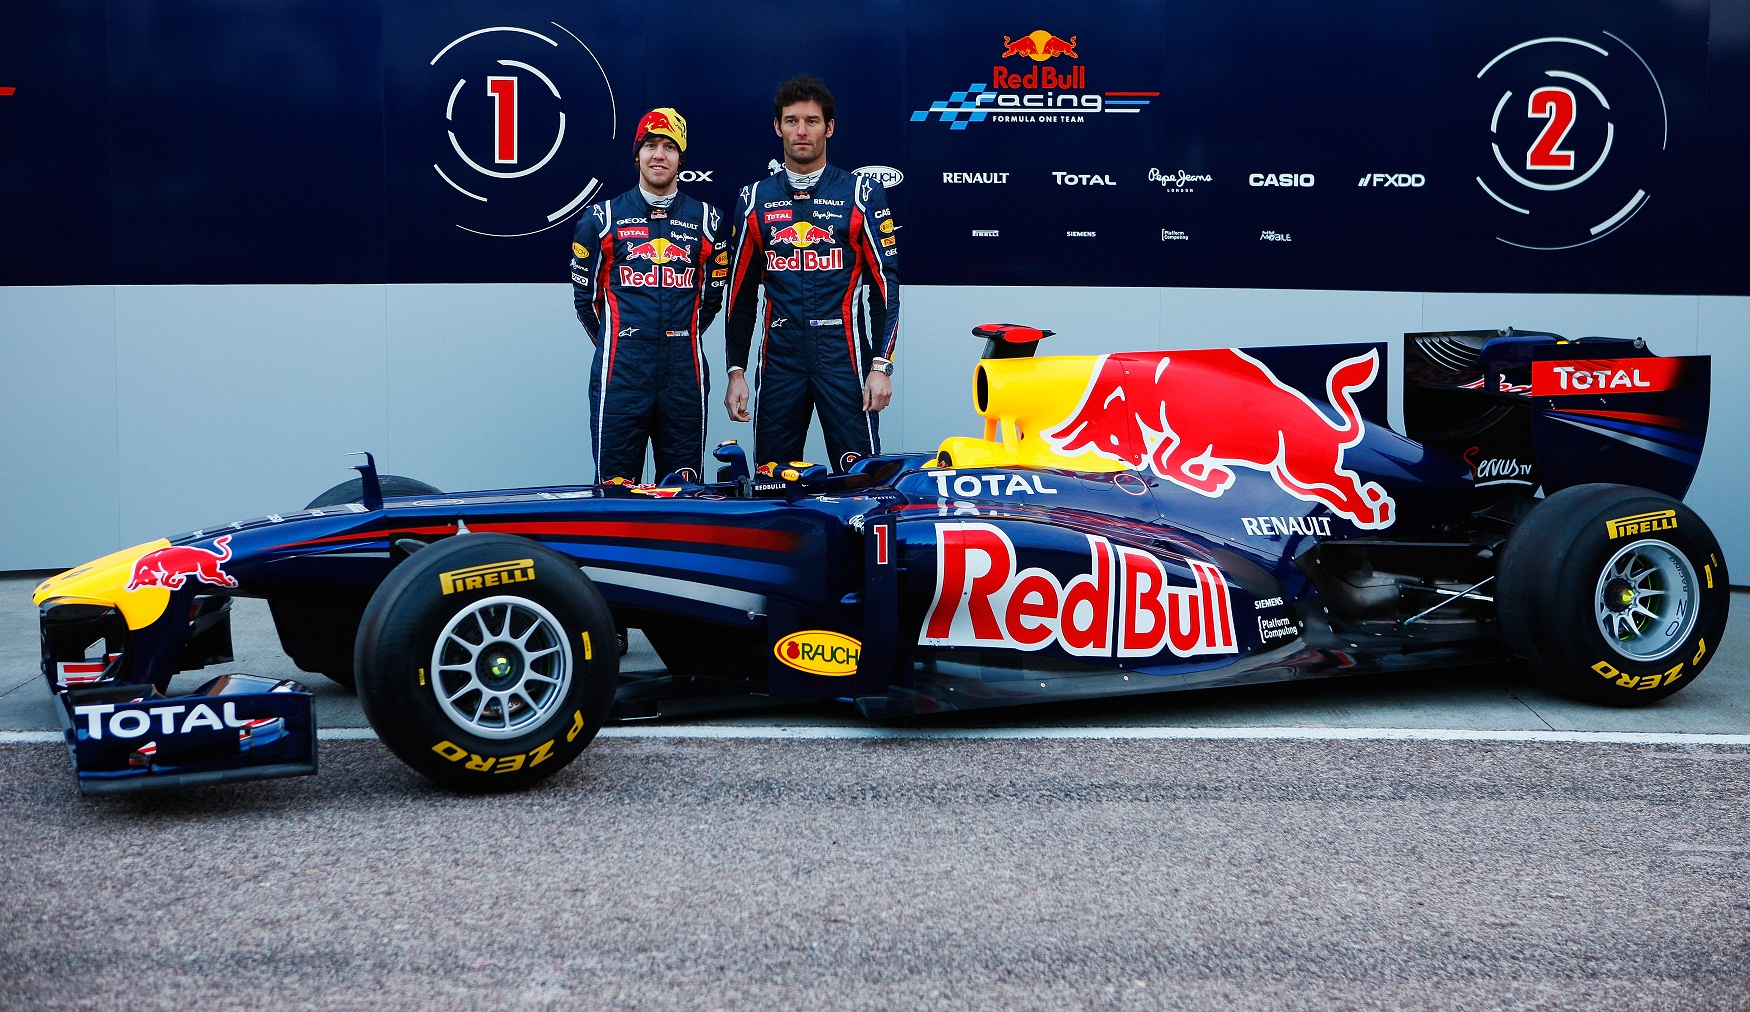 Red Bull RB7 presentacion red